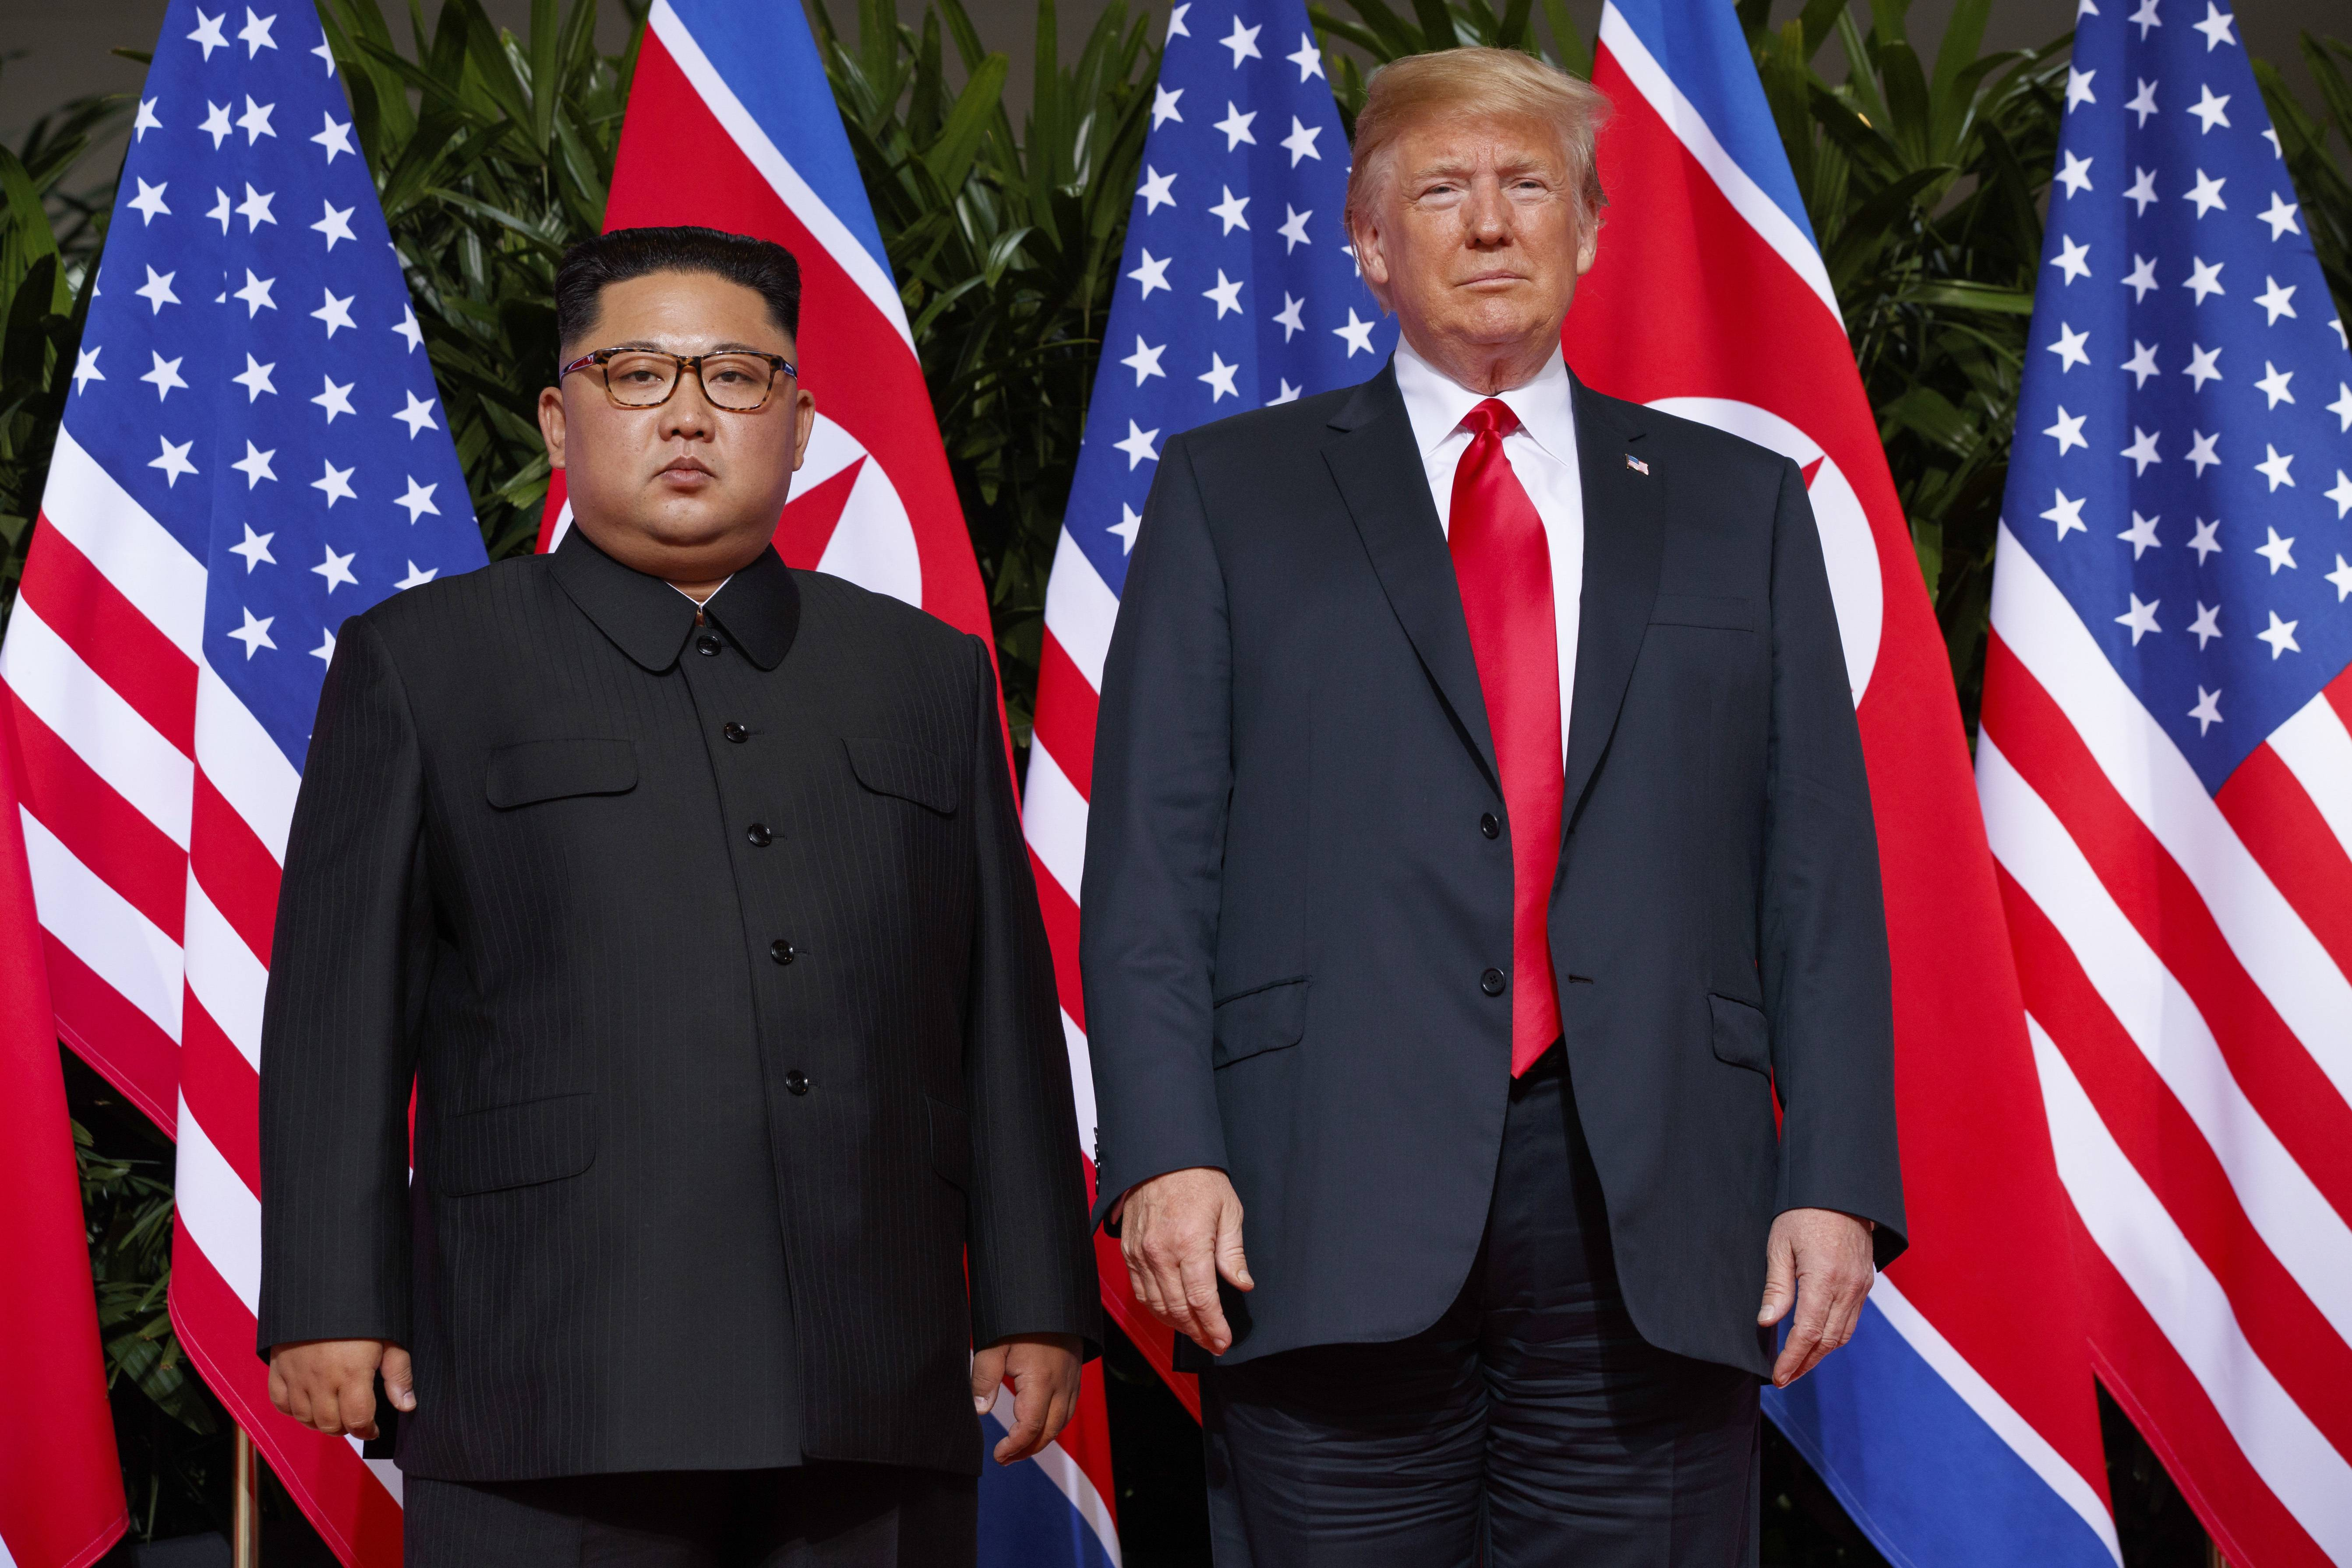 U.S. President Donald Trump meets with North Korean leader Kim Jong Un on Sentosa Island, in Singapore.